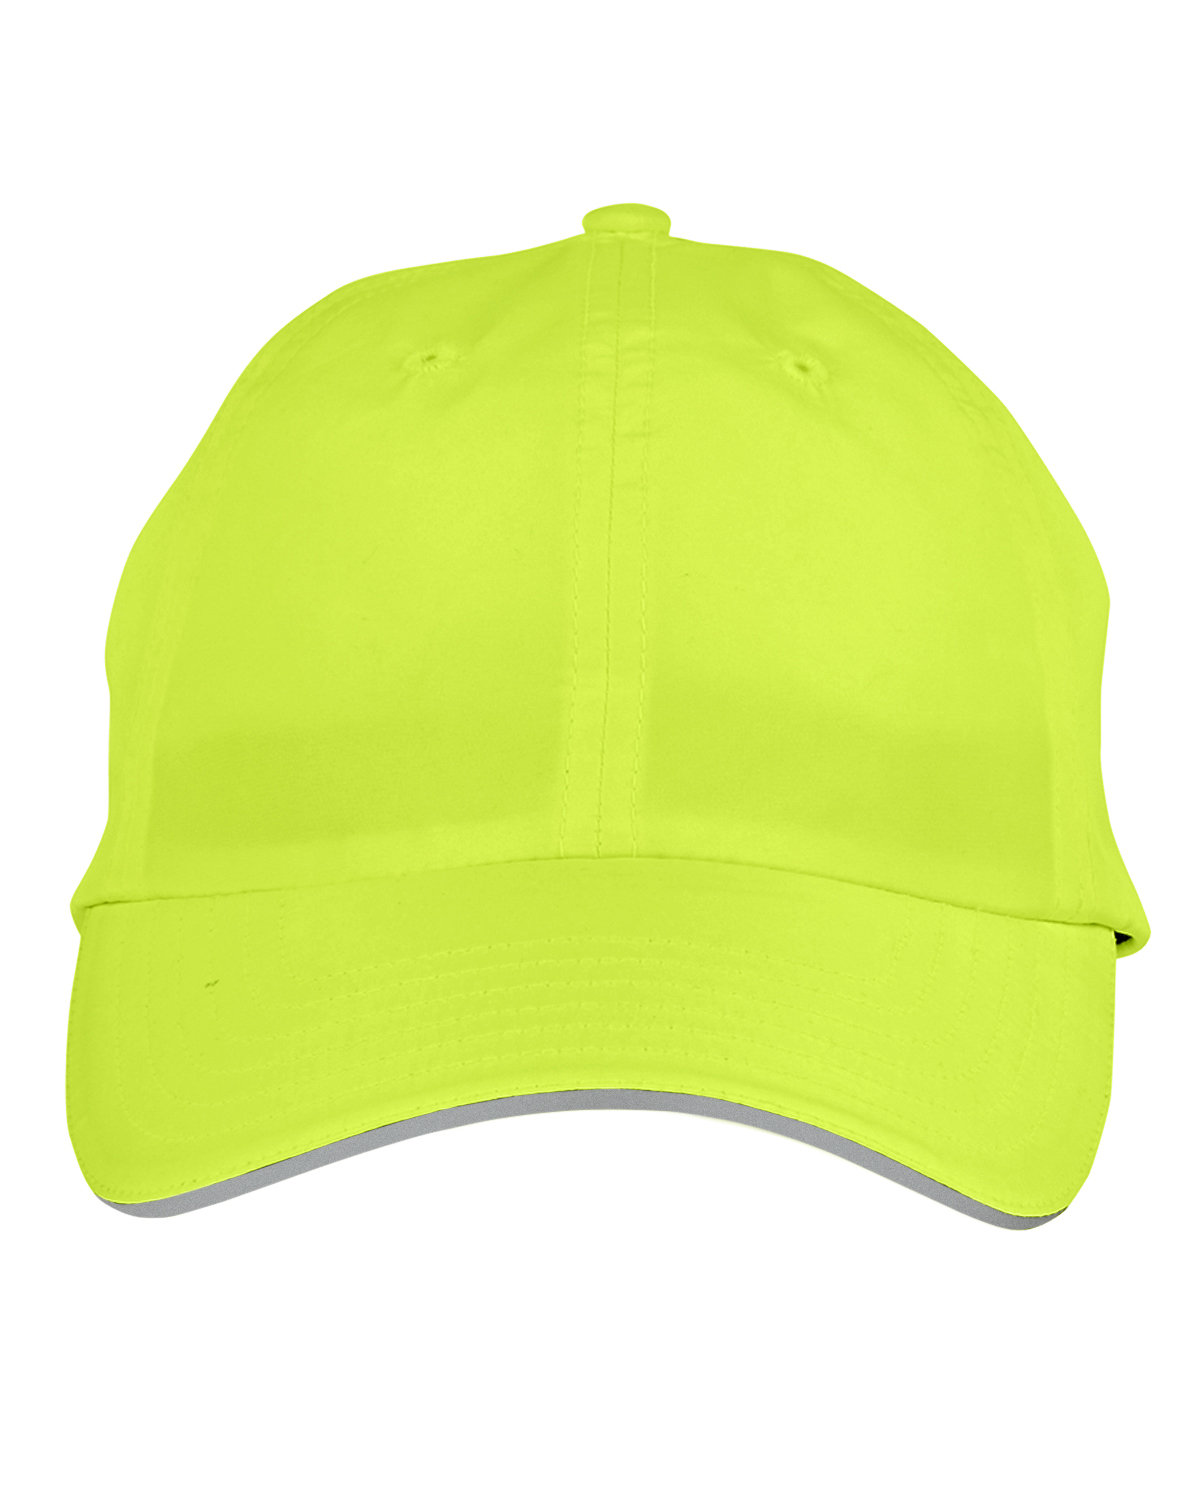 Core 365 Adult Pitch Performance Cap SAFETY YELLOW